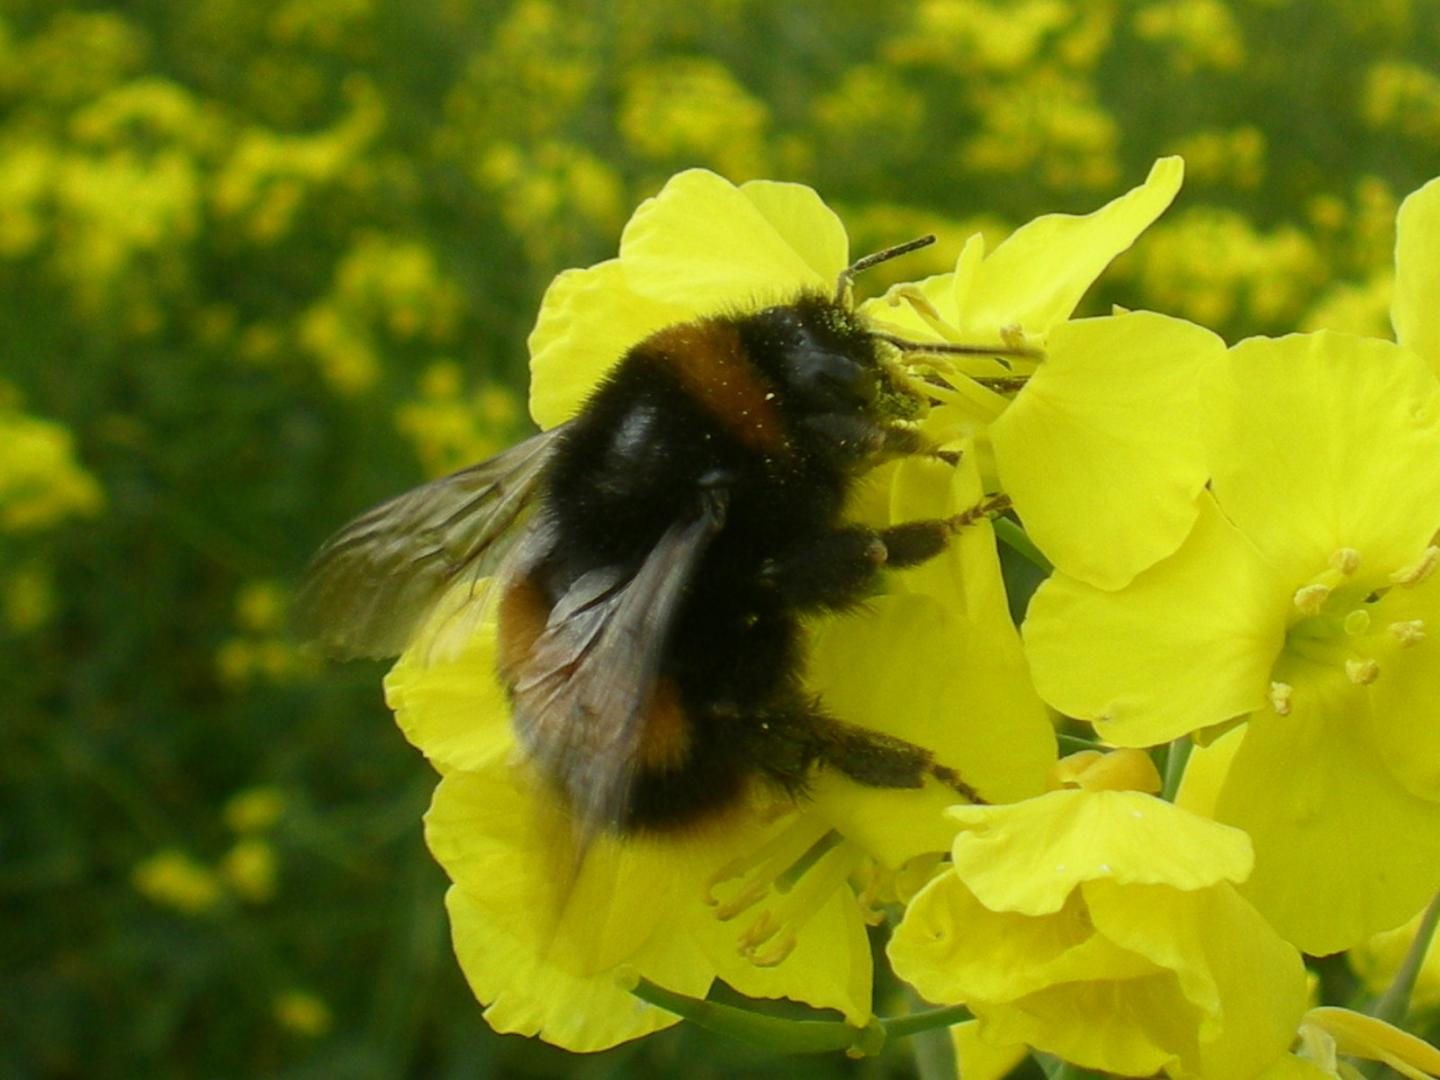 CATCH THE BUZZ – Neonic pesticides threaten wild bees' spring breeding, study finds